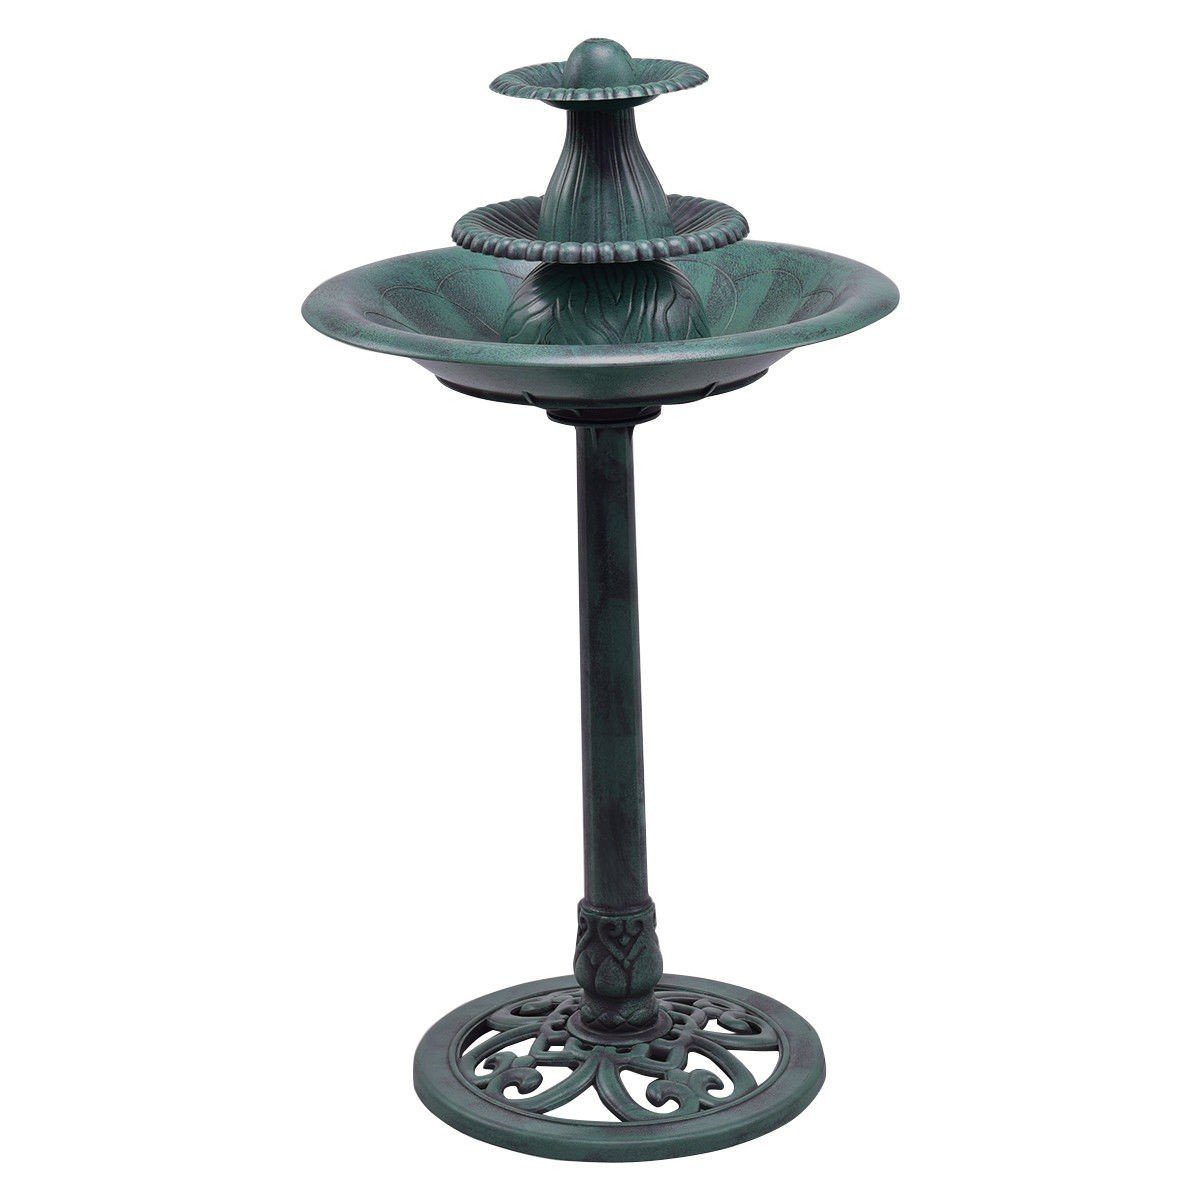 Fountain - 3-Tier Outdoor Bird Bath And Fountain With Pump